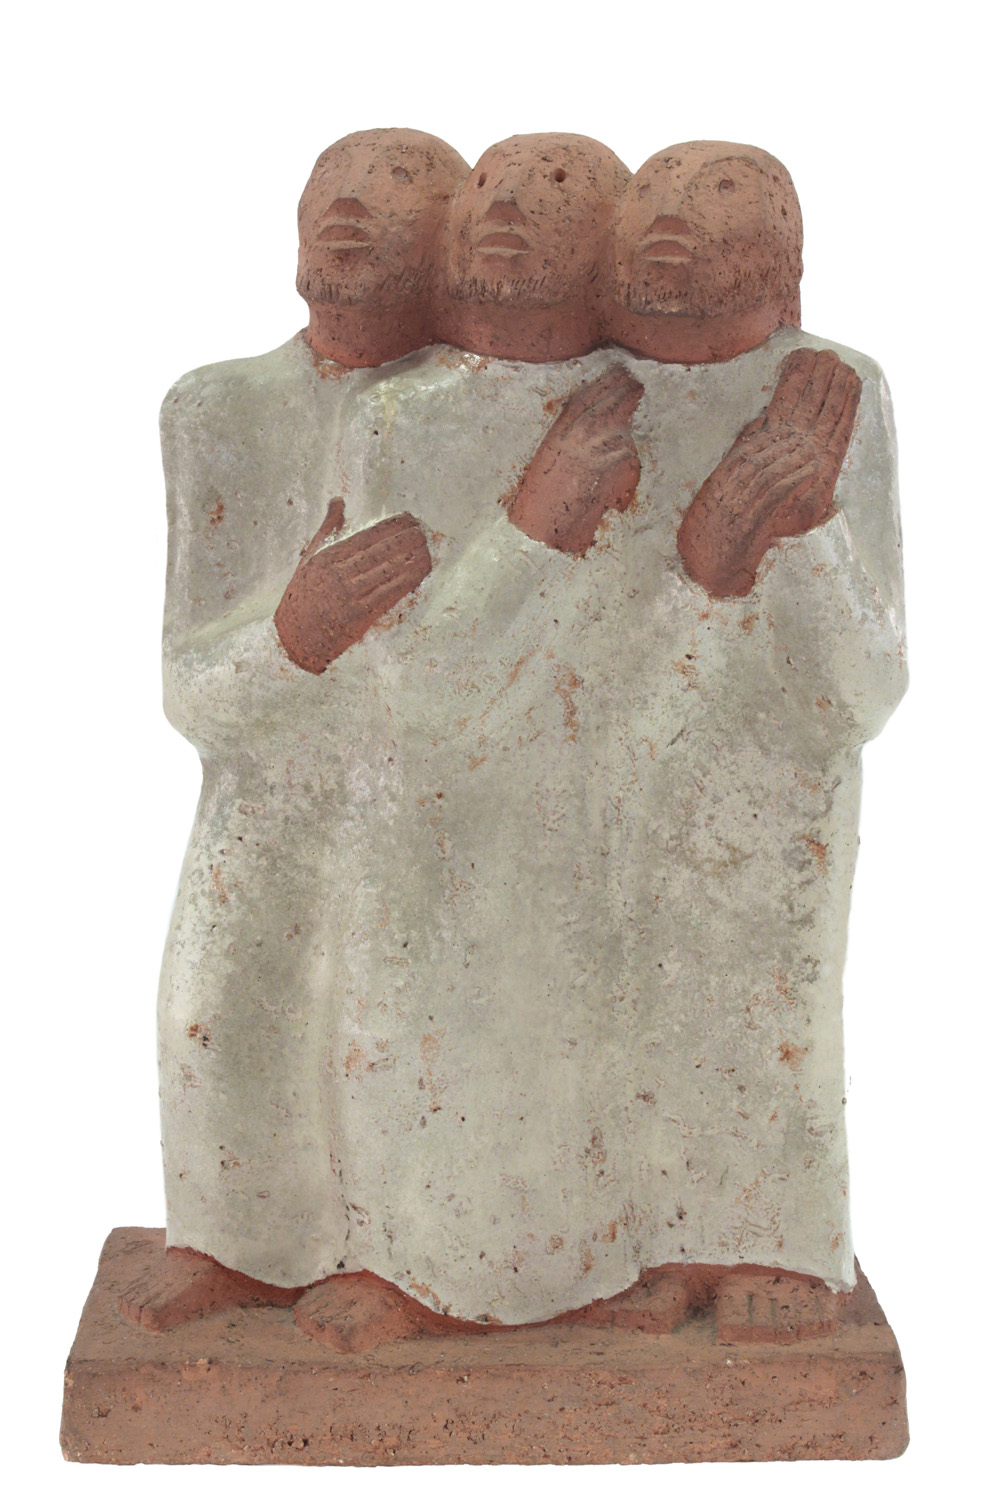 Beling 35 3 cloaked men sculpture90 hires.jpg